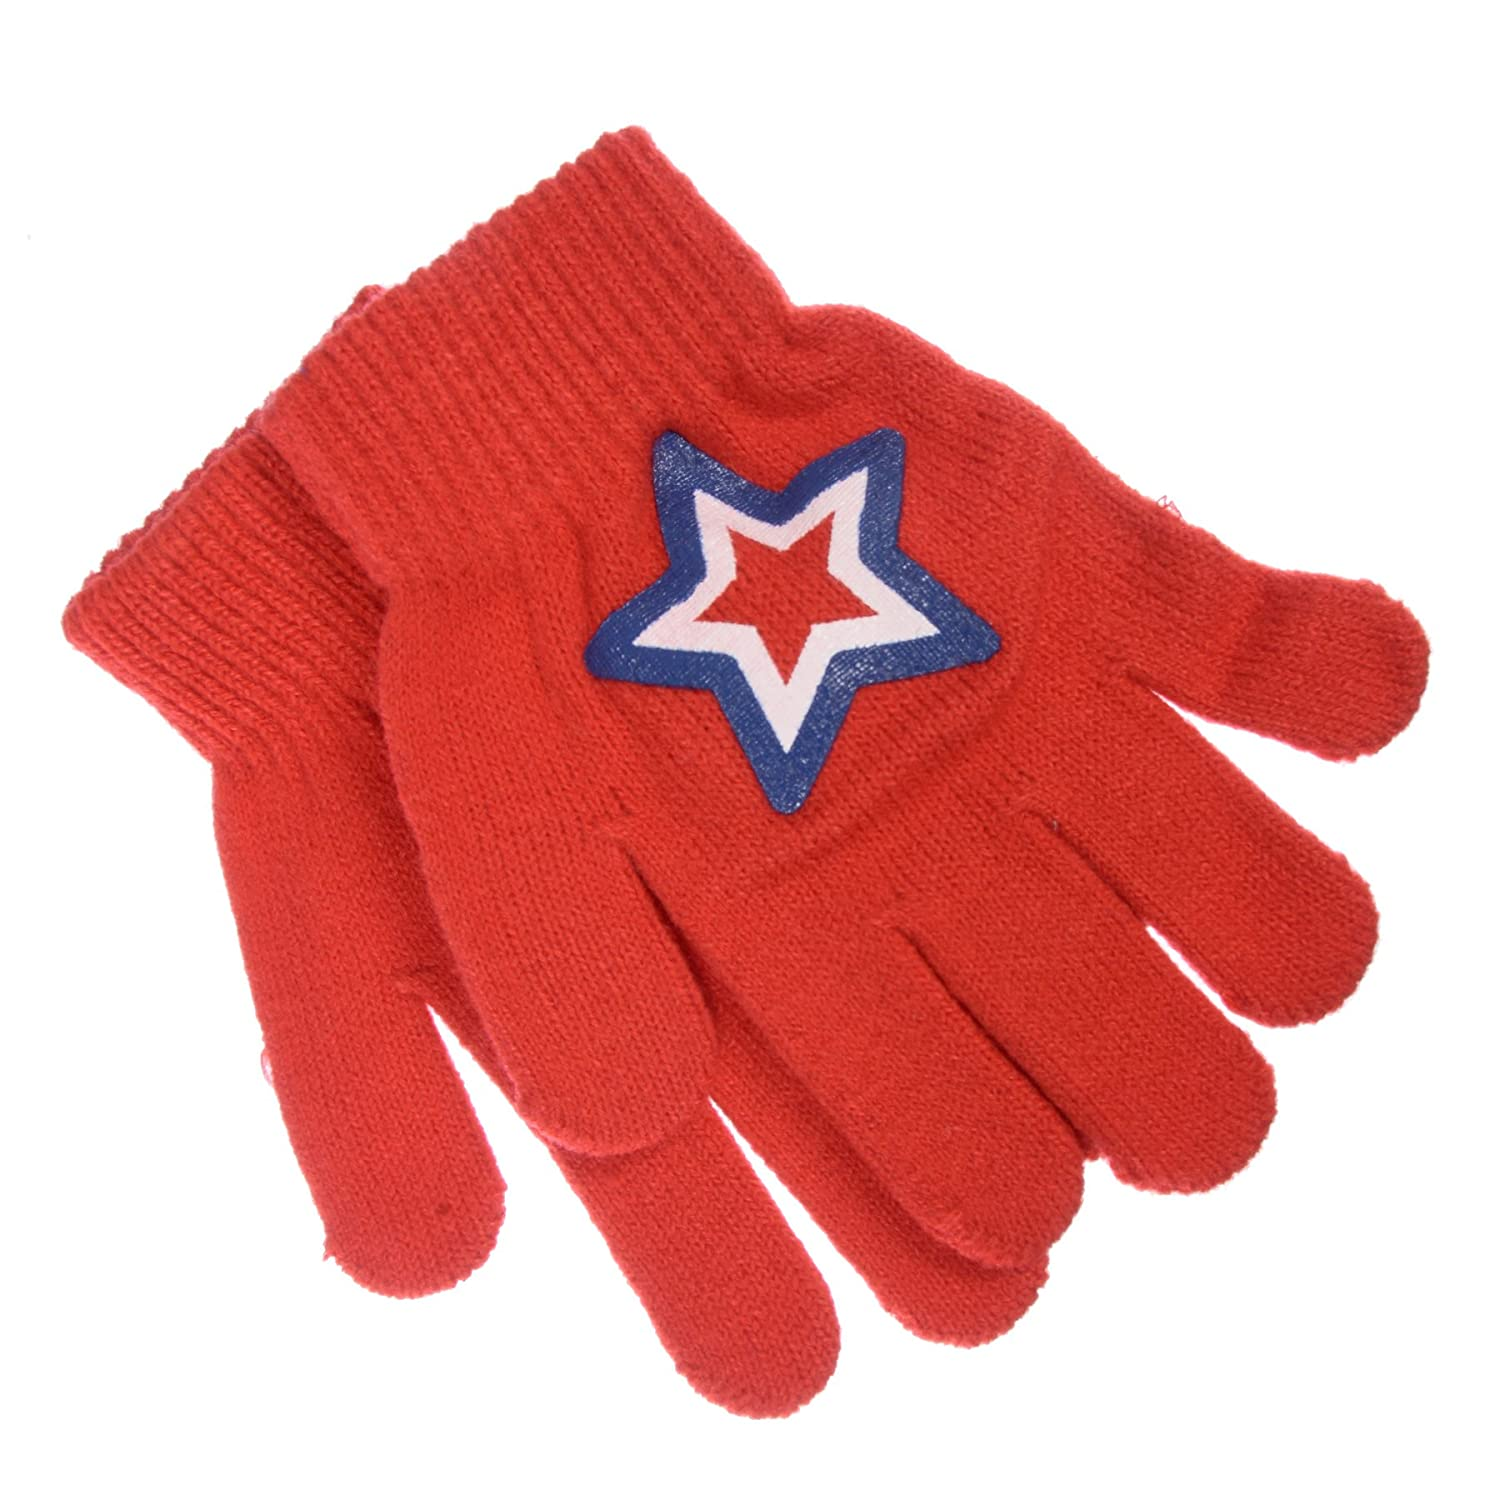 Chili Peppers Boys Gripper Winter Beanie and Glove Set